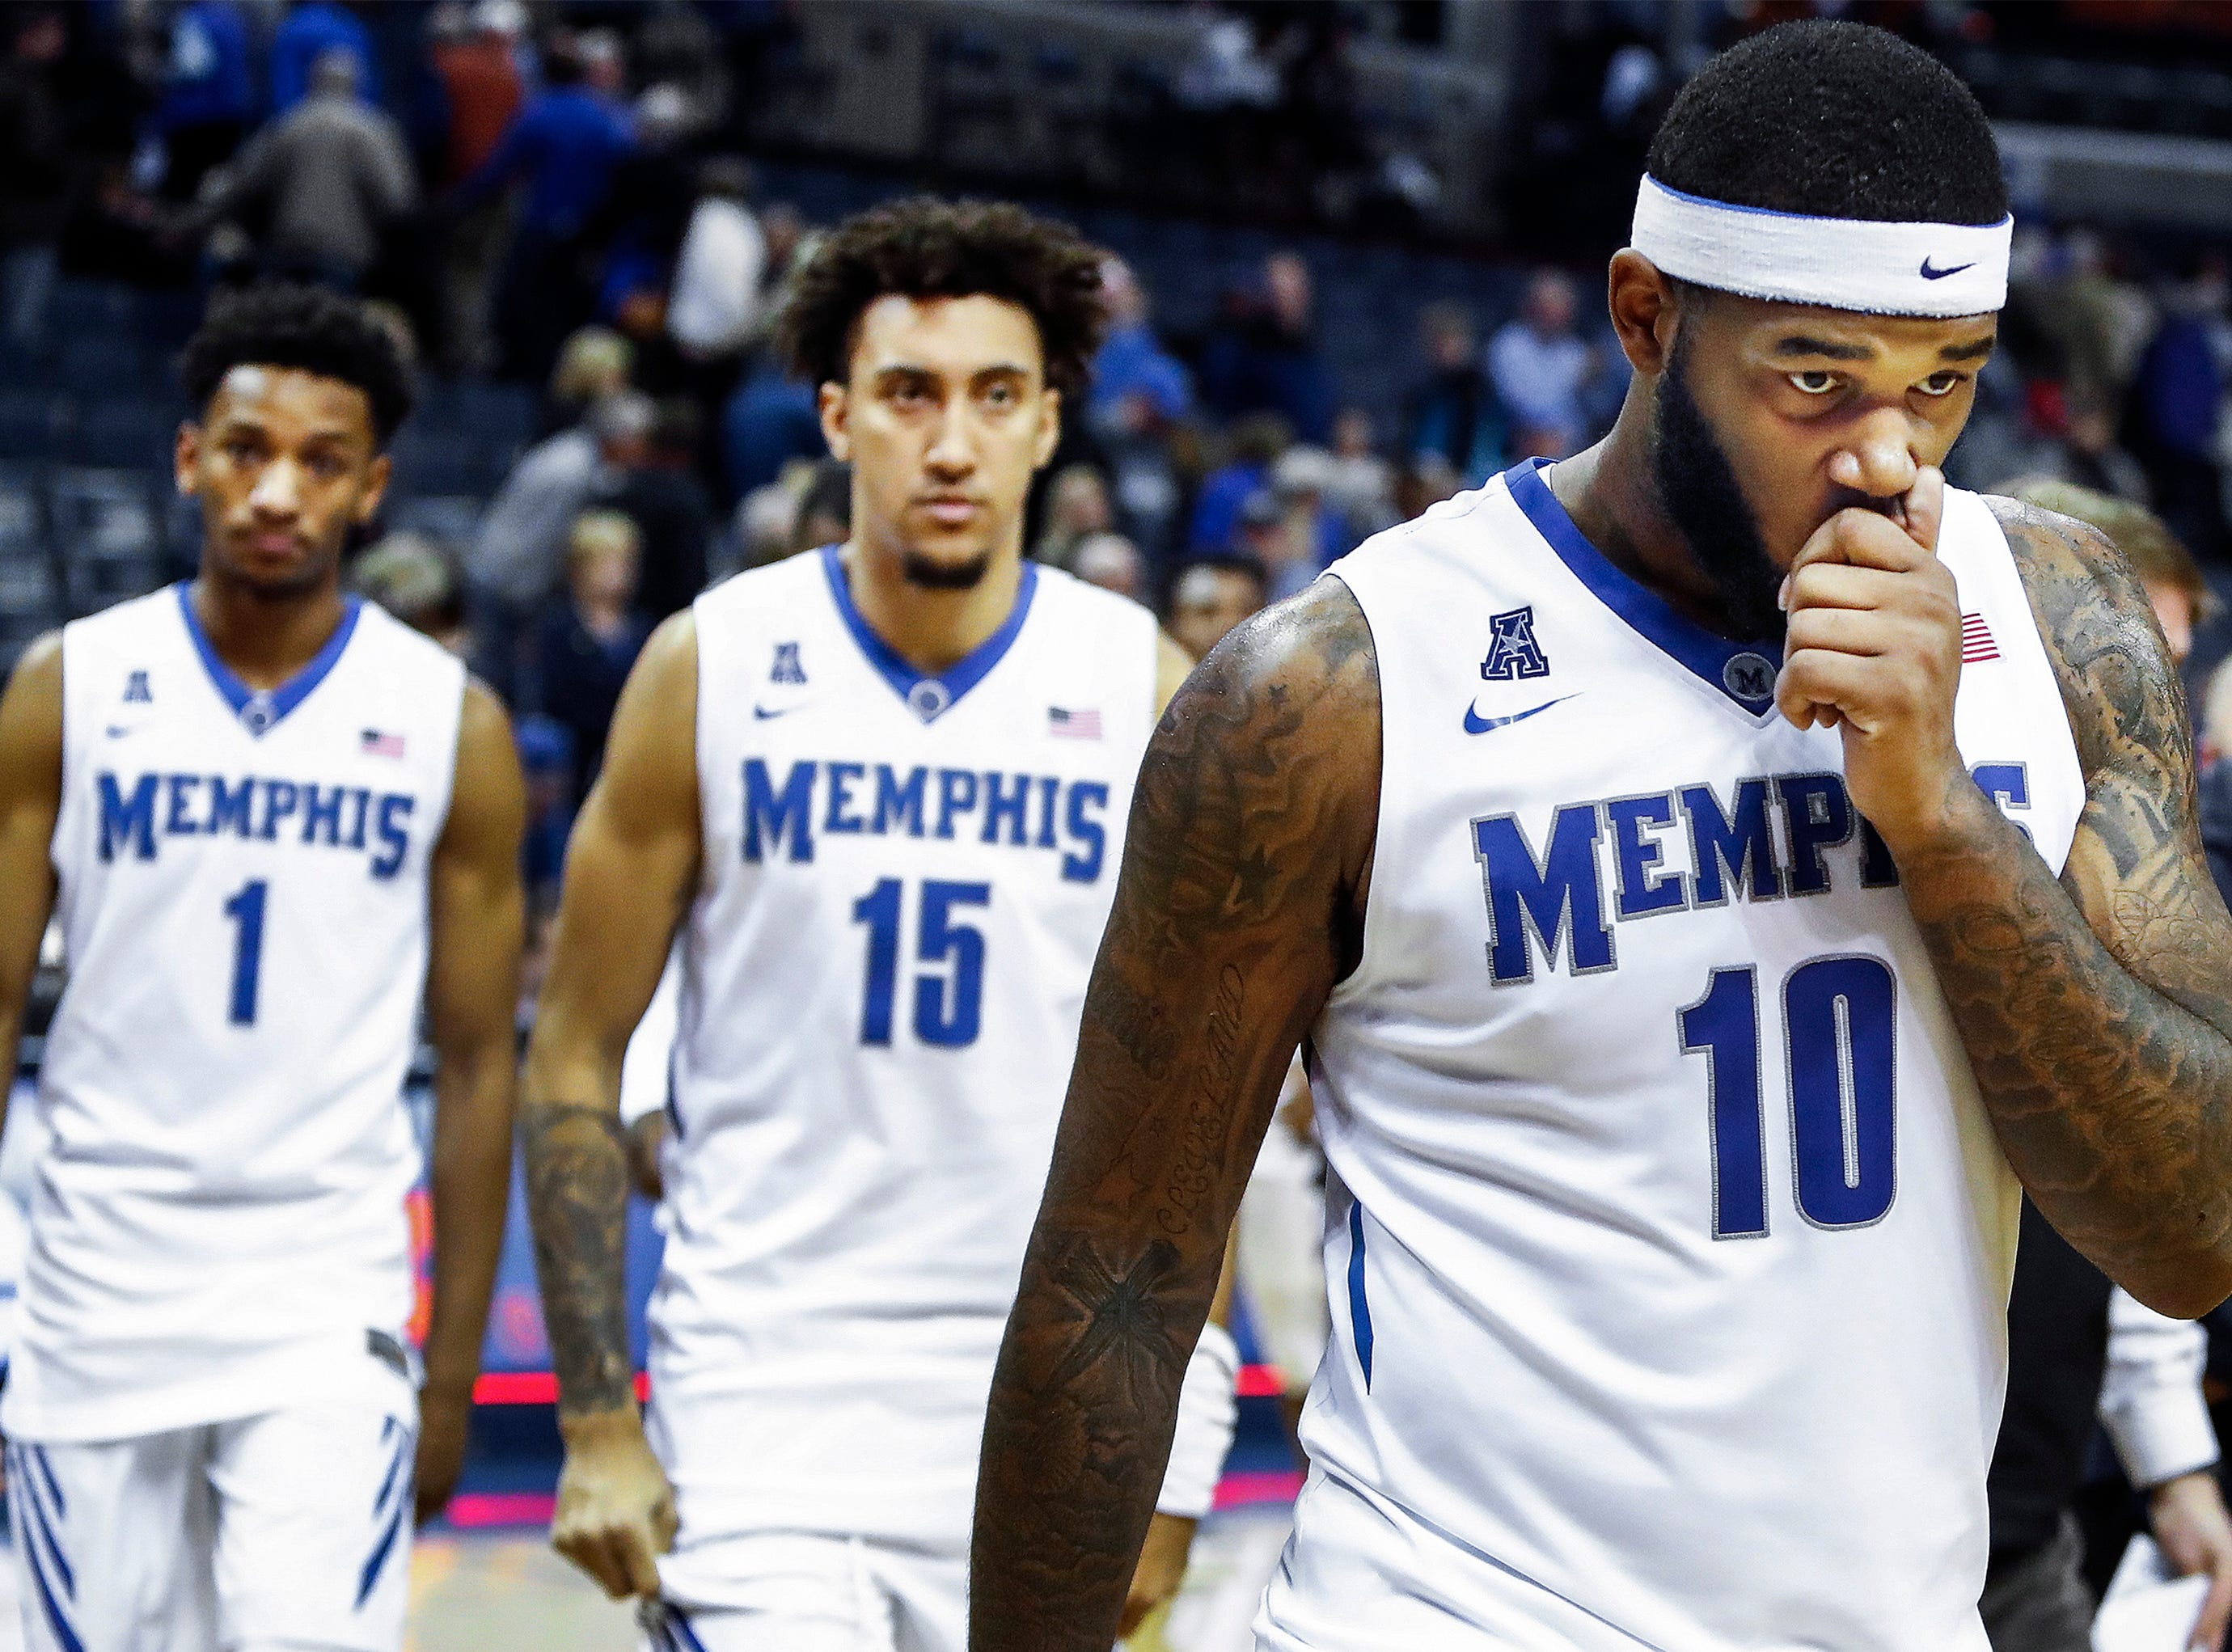 Memphis forward Mike Parks Jr. walks off the court after the Tigers loss to Cincinnati 62-48 at the FedExForum in Memphis Tenn., Saturday, January 27, 2018.